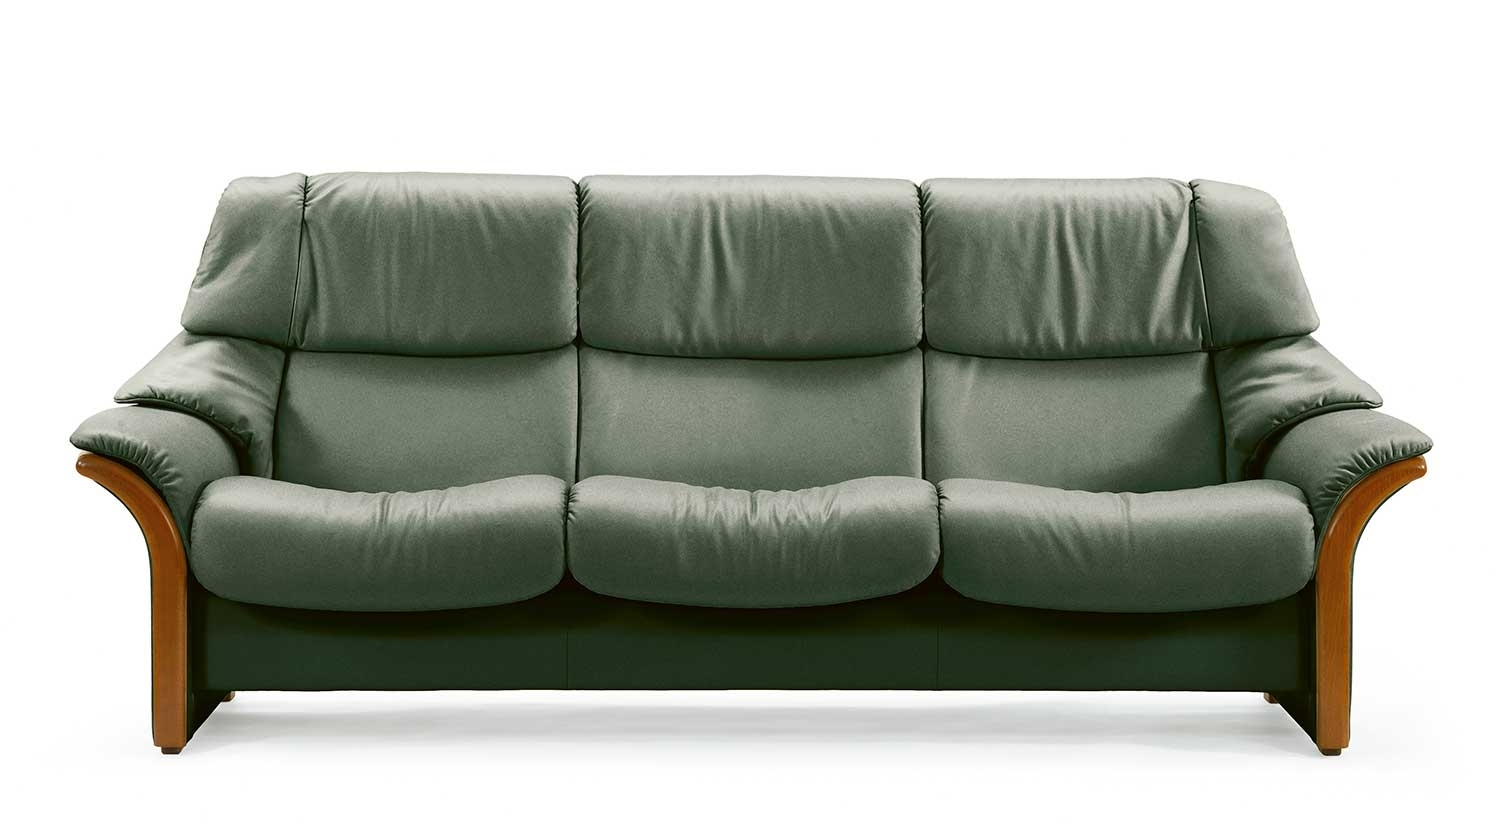 Circle Furniture – Eldorado Stressless Highback Sofa | Ekornes Sofas Ma Pertaining To El Dorado Sectional Sofas (View 2 of 10)